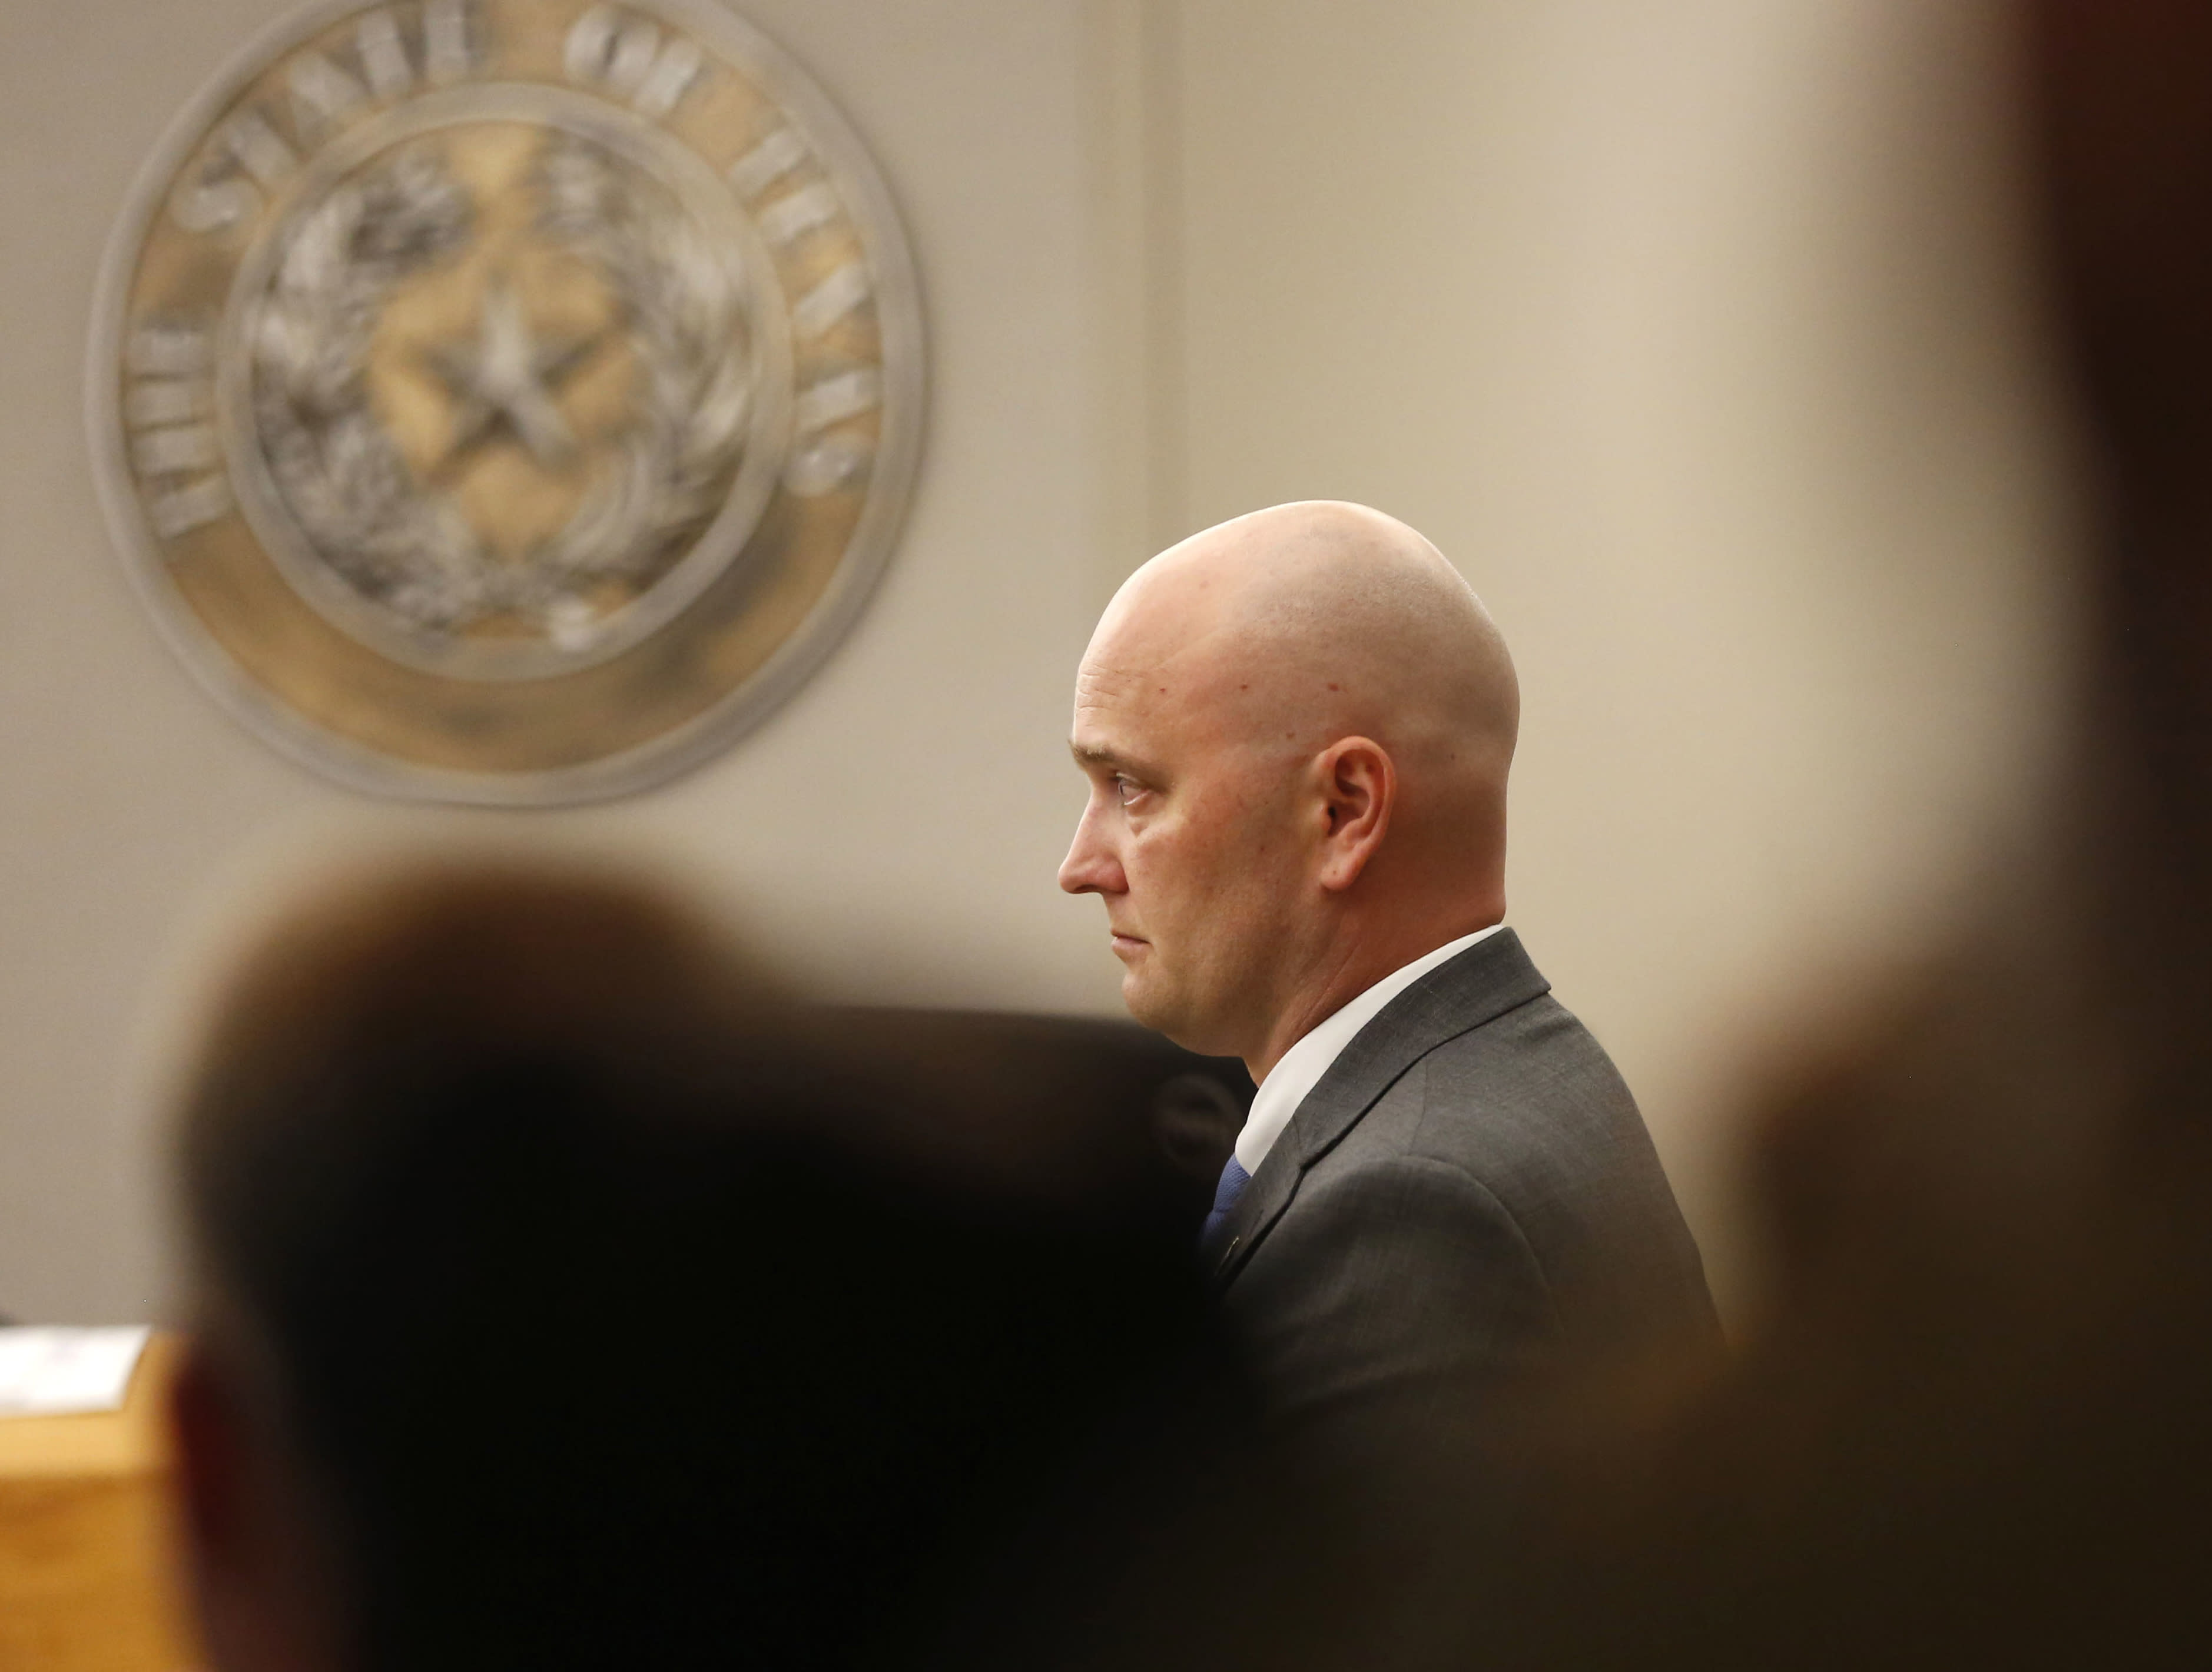 Jury to resume deliberating in ex-officer's murder trial